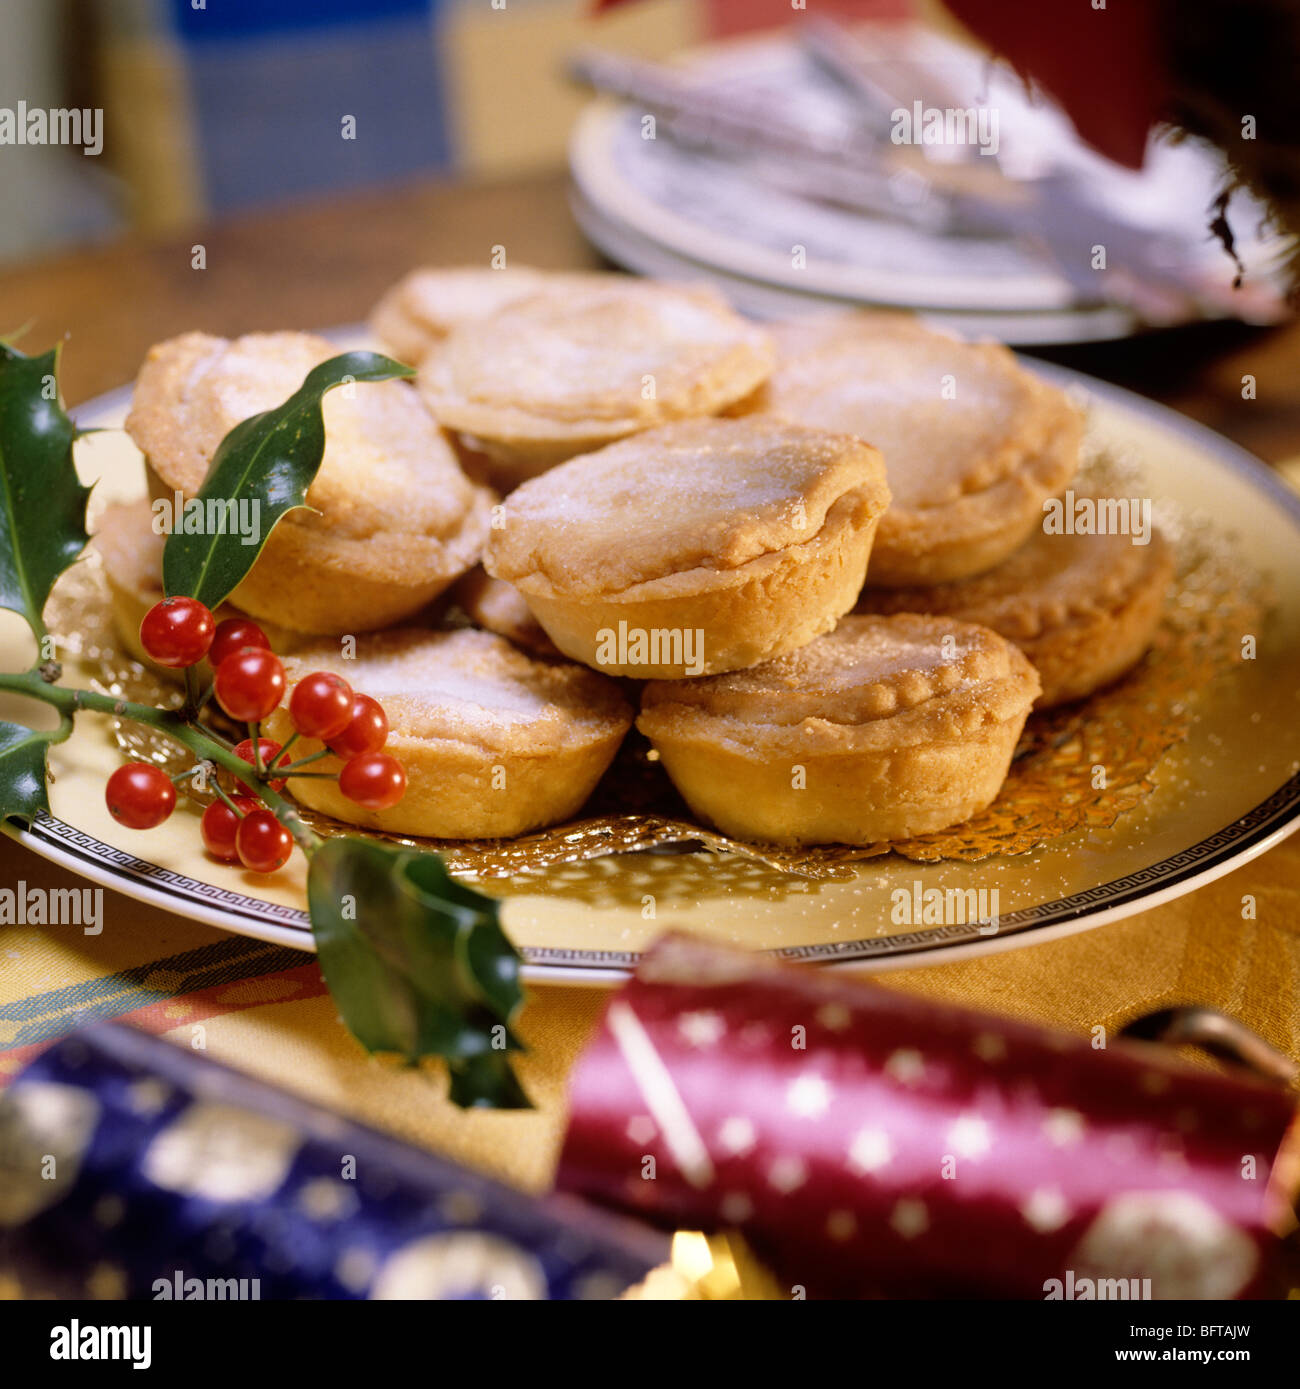 Plate of mince pies with sprig of holly decoration - Stock Image